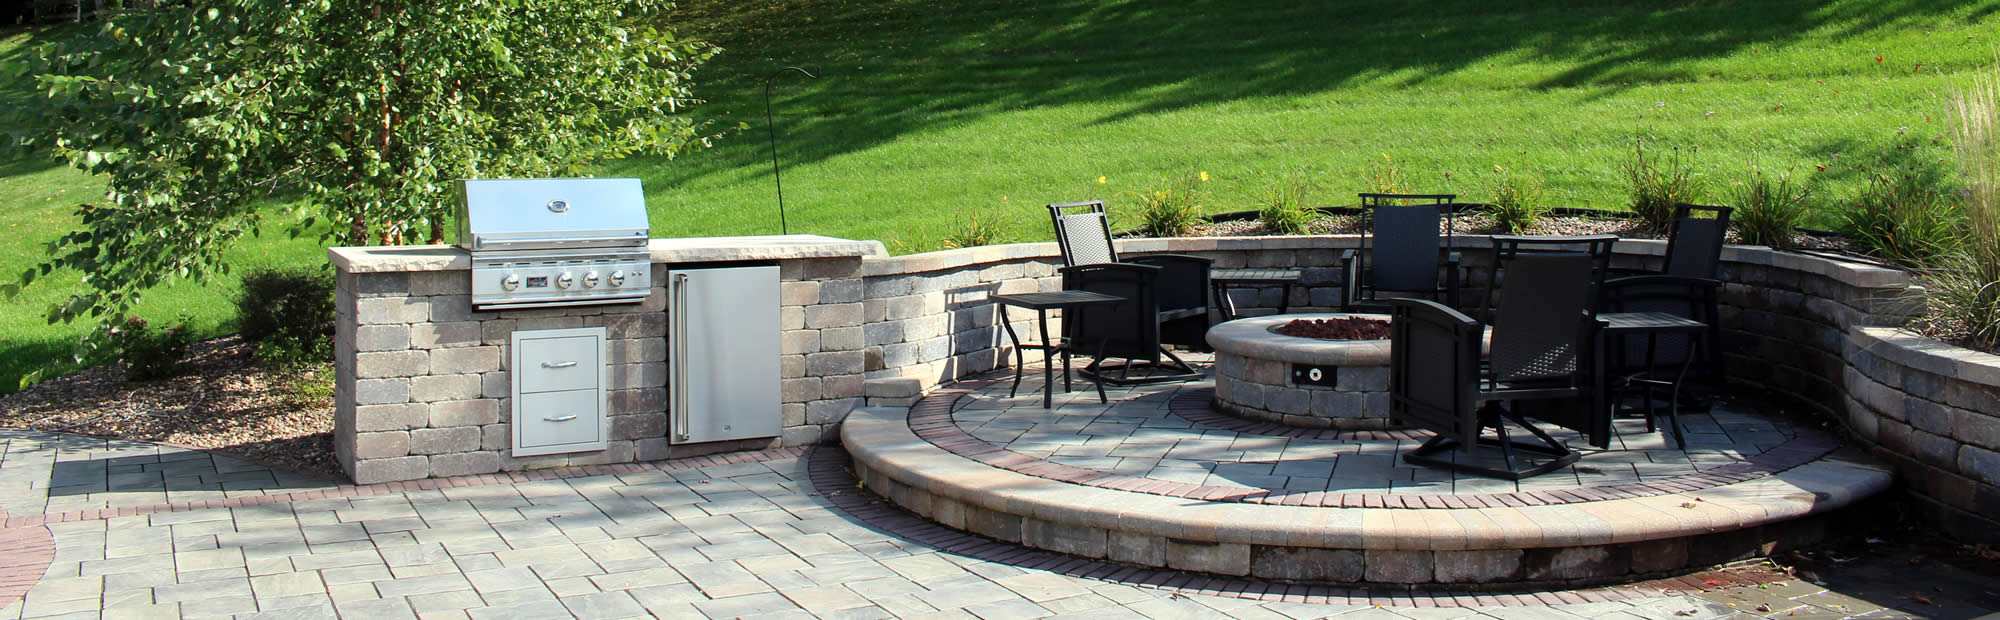 Outdoor Kitchen with Patio and Retaining Wall Construction